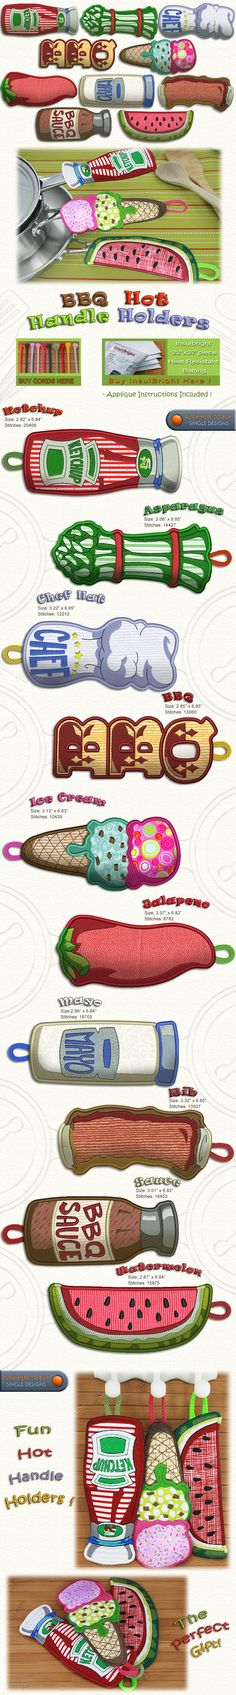 BBQ Hot Handle Holders Embroidery Designs Free Embroidery Design Patterns Applique